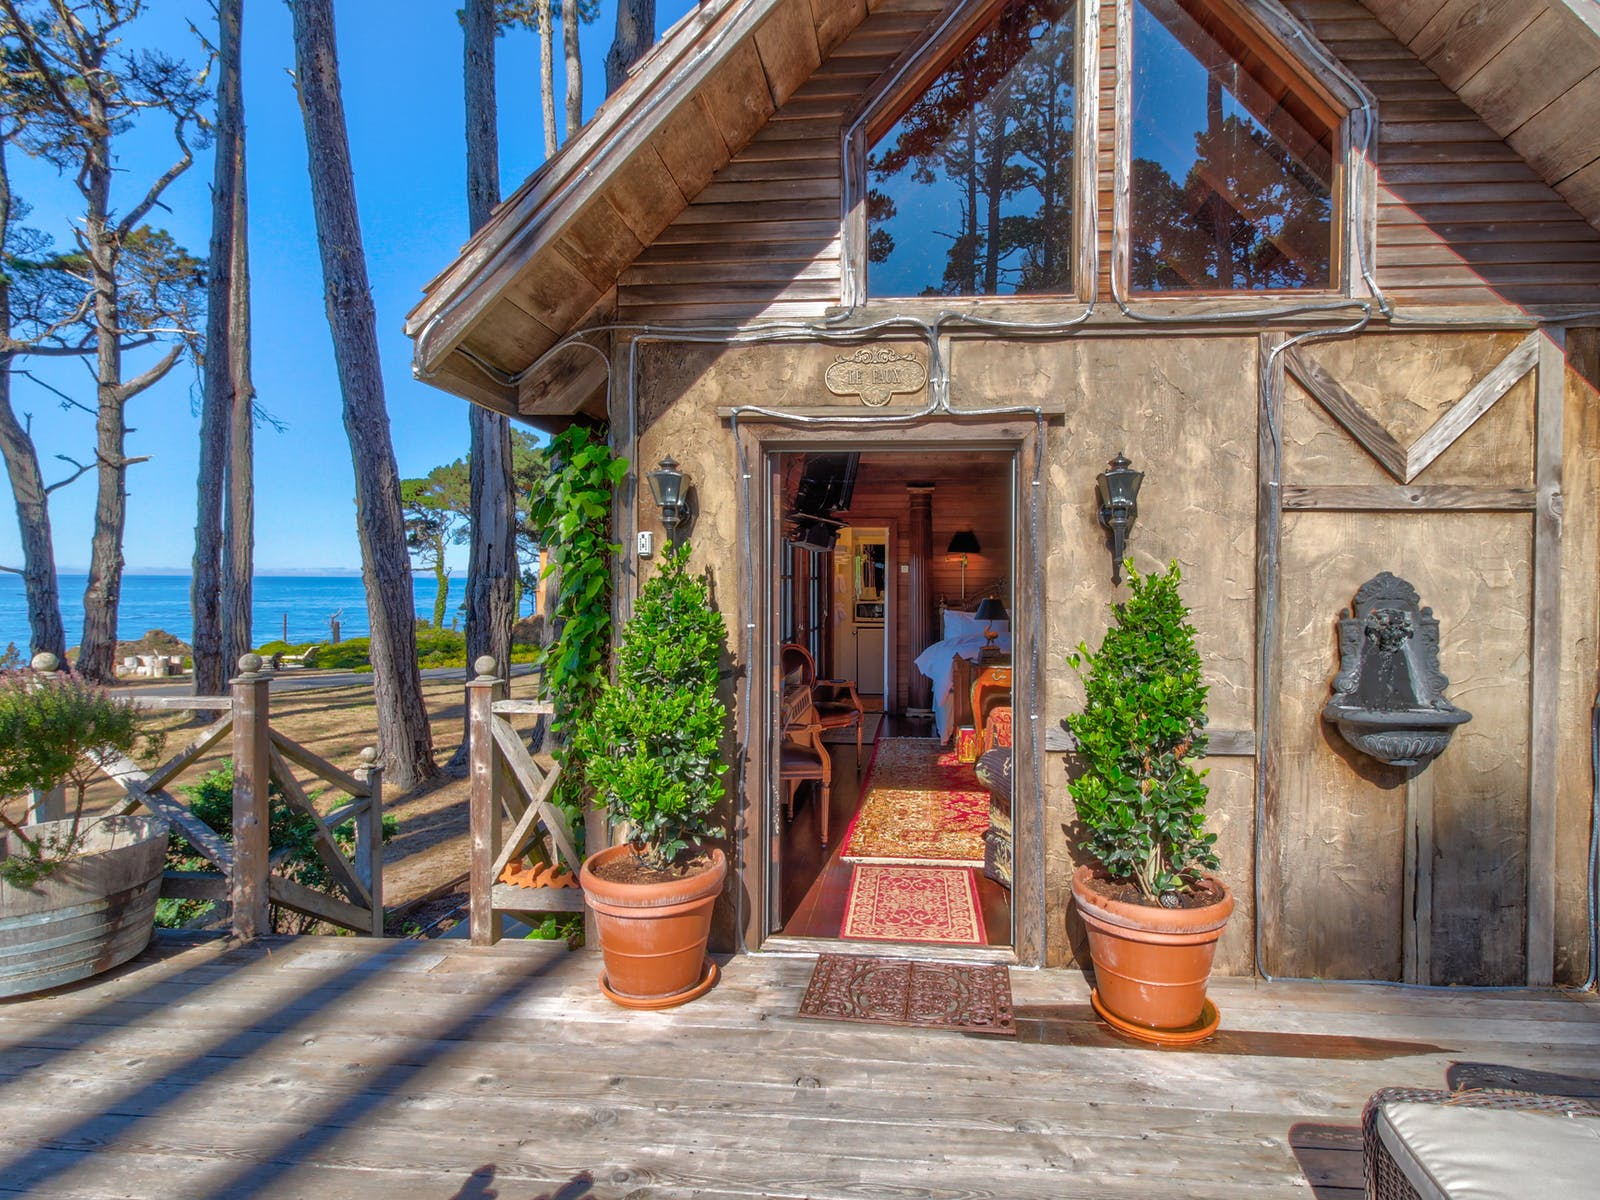 waterfront vacation home located in Fort Bragg, CA